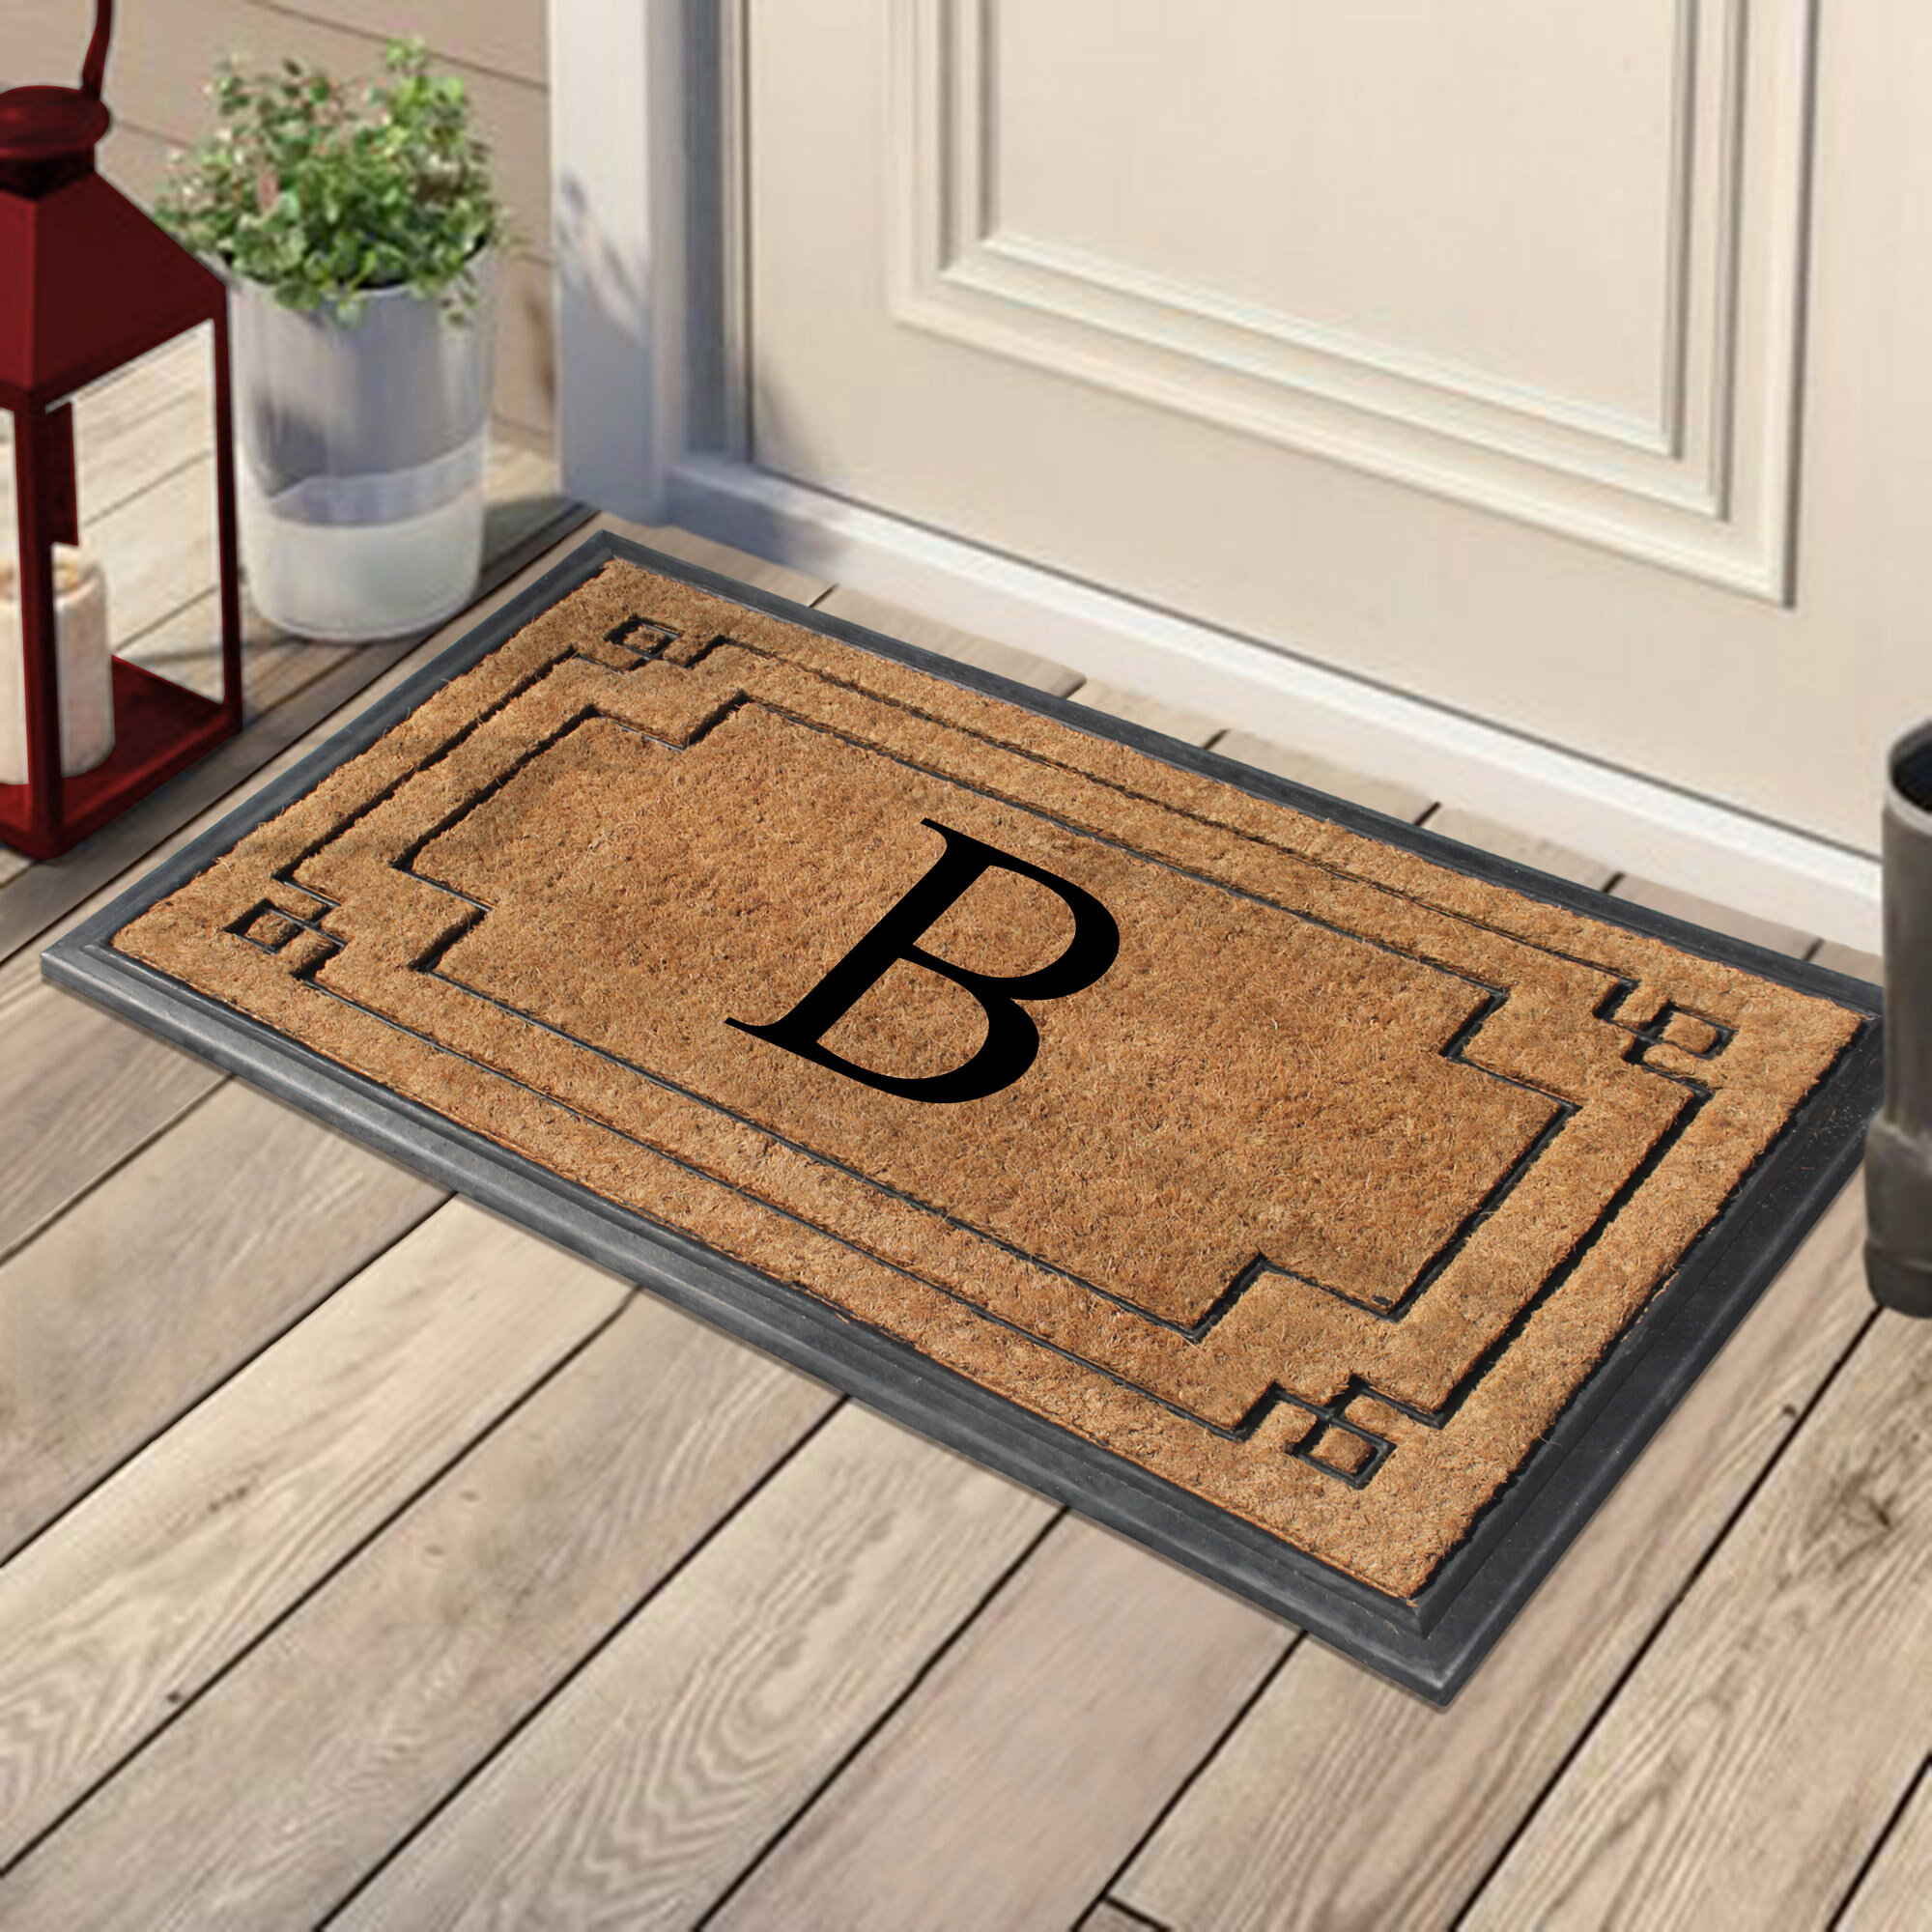 Gracie Oaks Bendon 36 X 24 Non Slip Outdoor Door Mat Wayfair